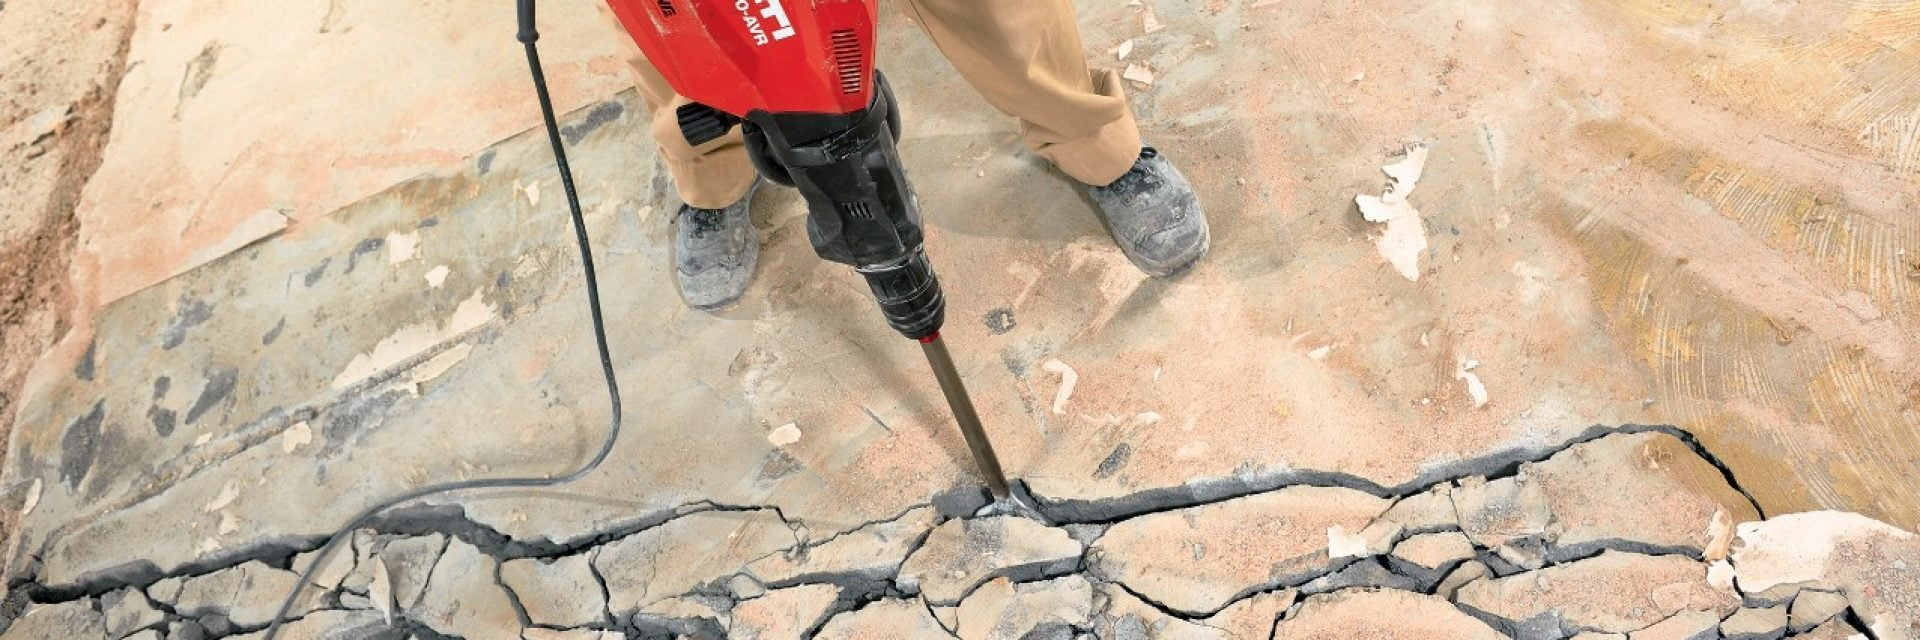 3 WAYS TO MINIMISE HAZARDS ON THE CONSTRUCTION SITE